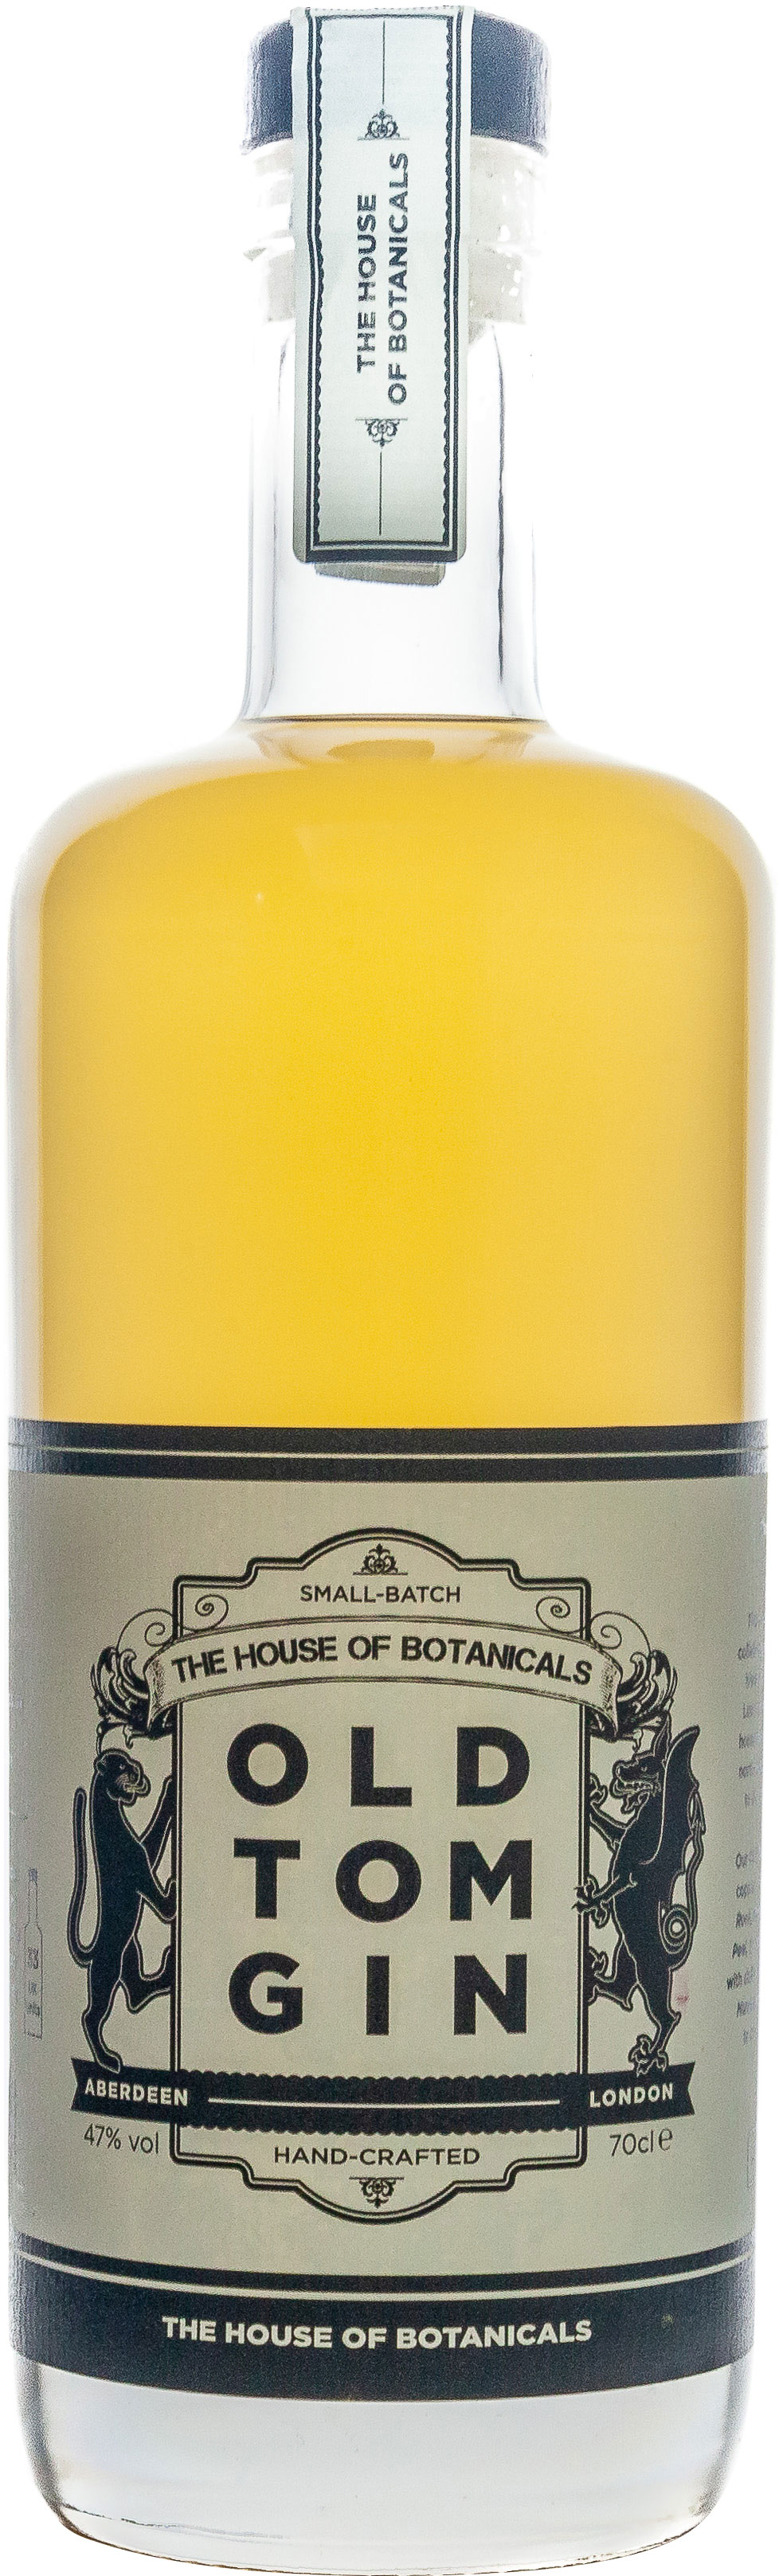 House of Botanicals - Old Tom Gin 70cl Bottle